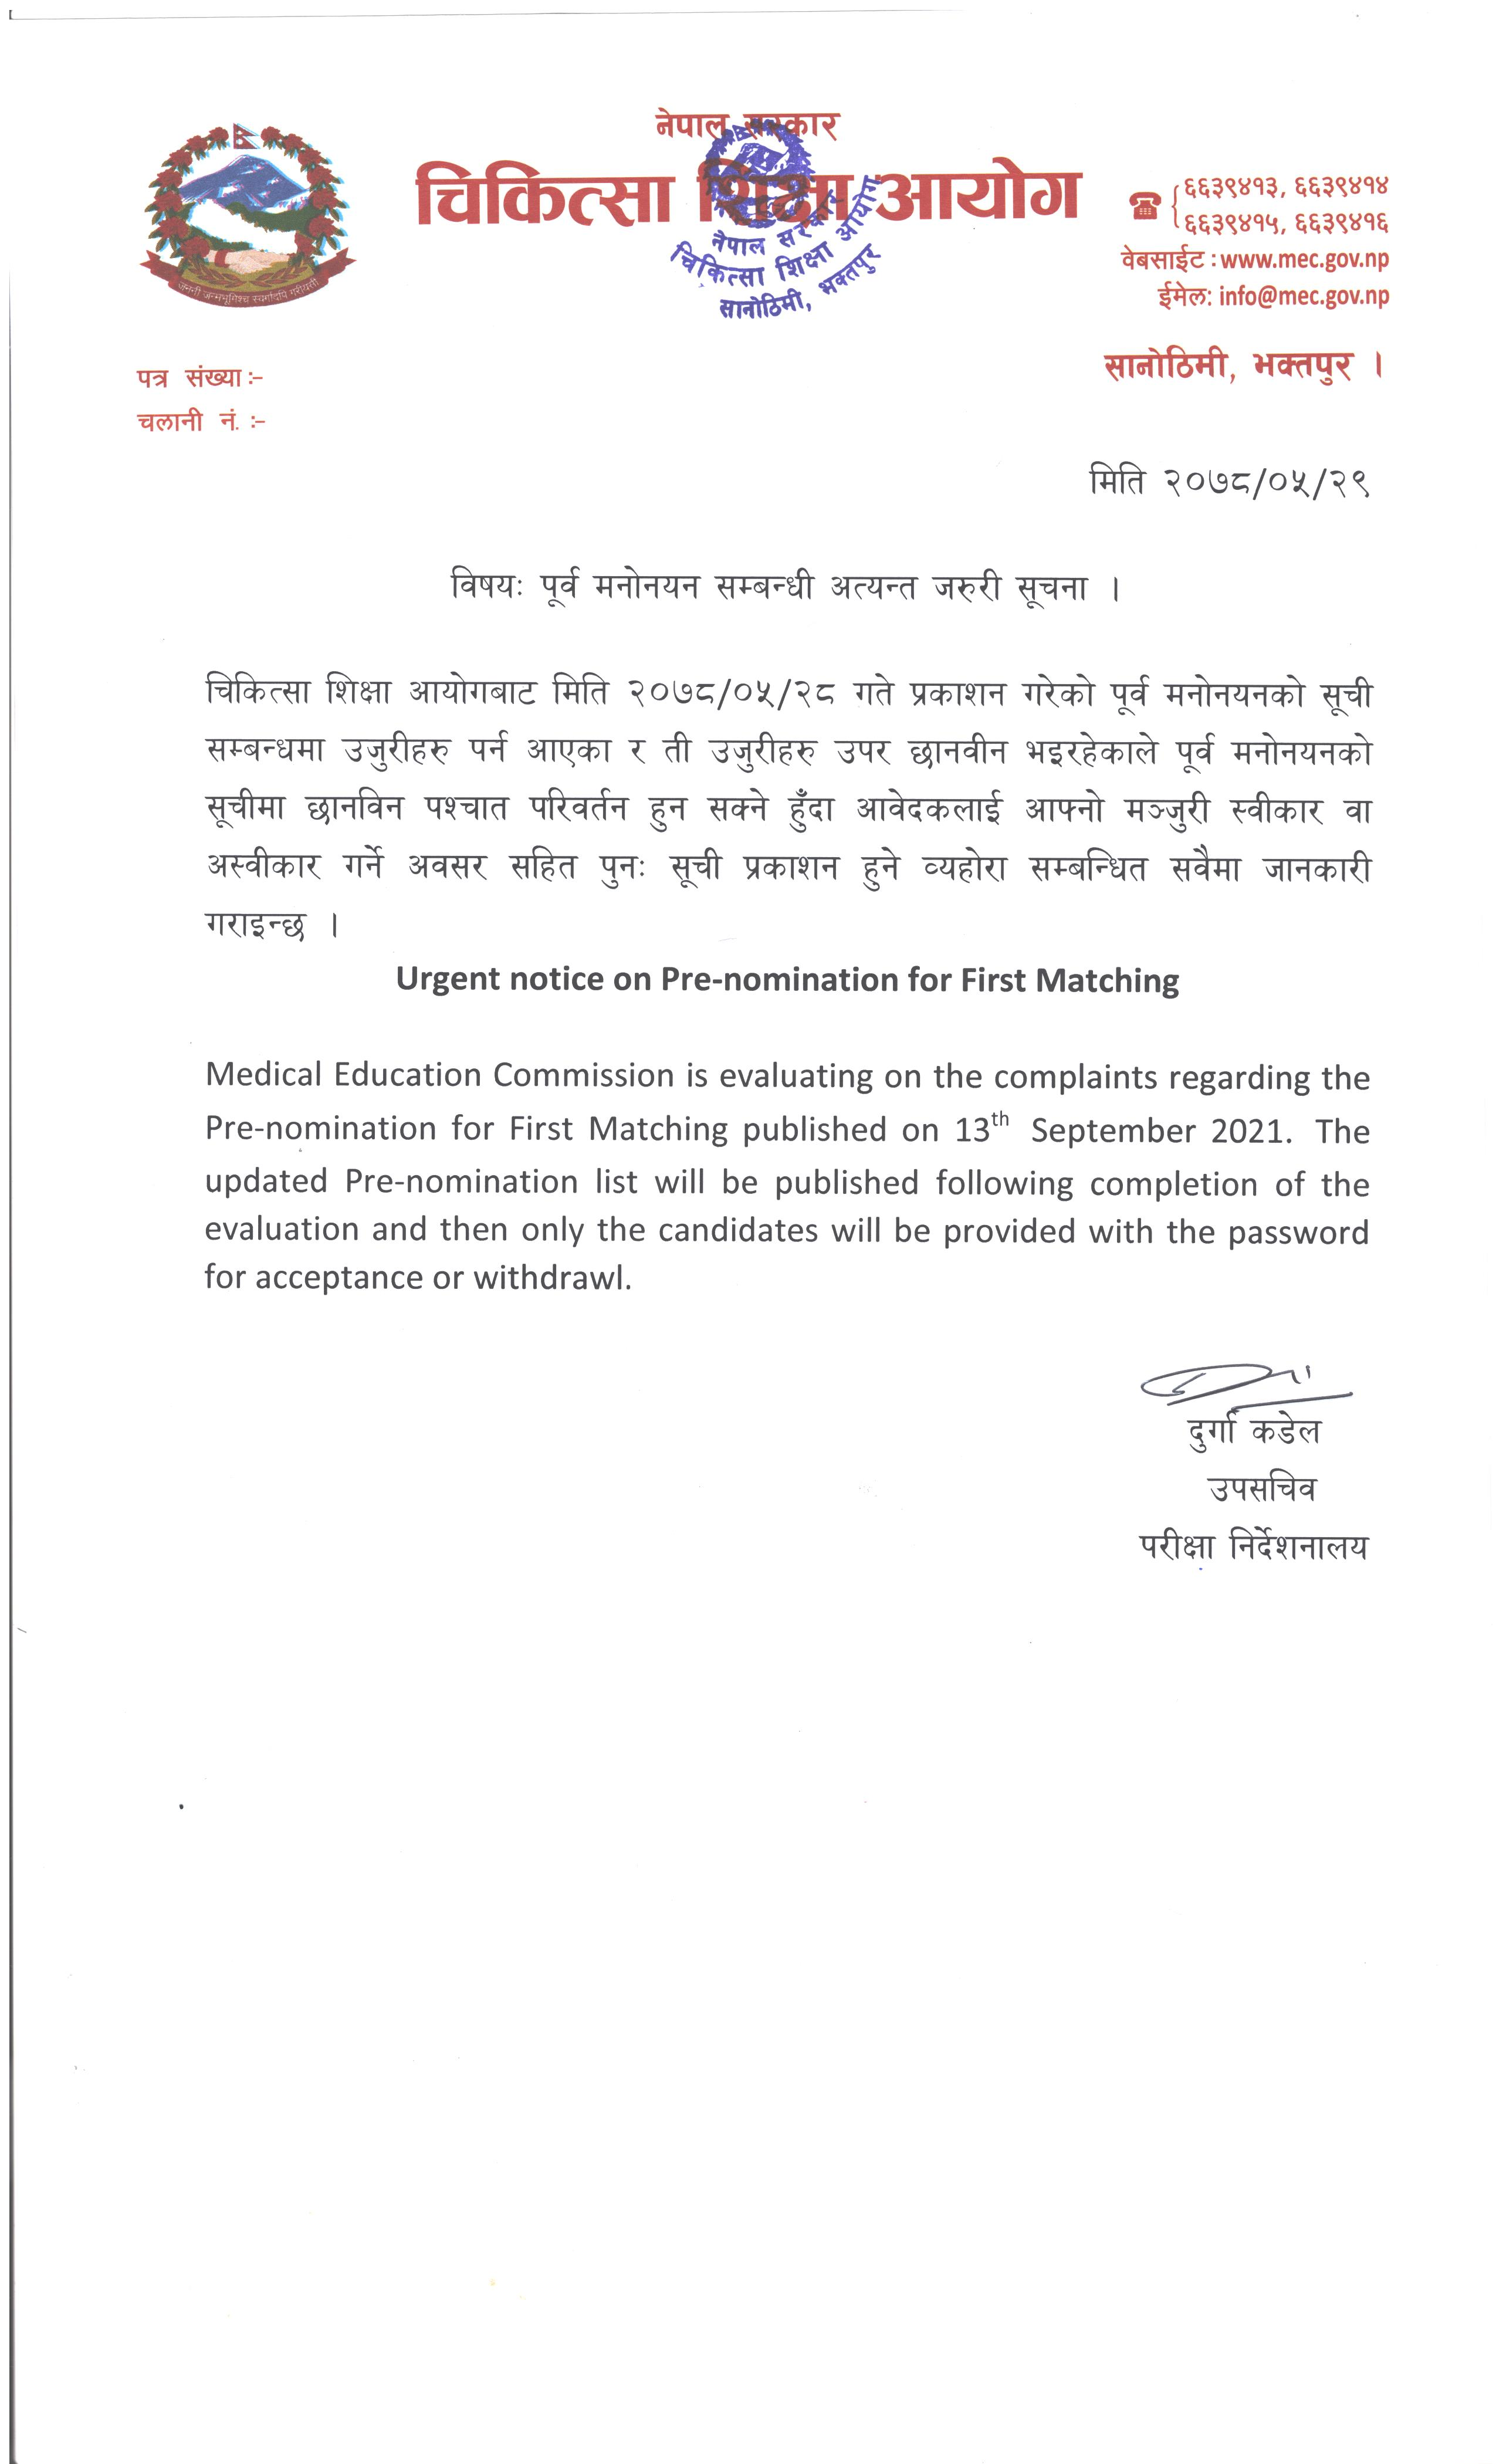 Urgent notice on Pre-nomination for First Matching